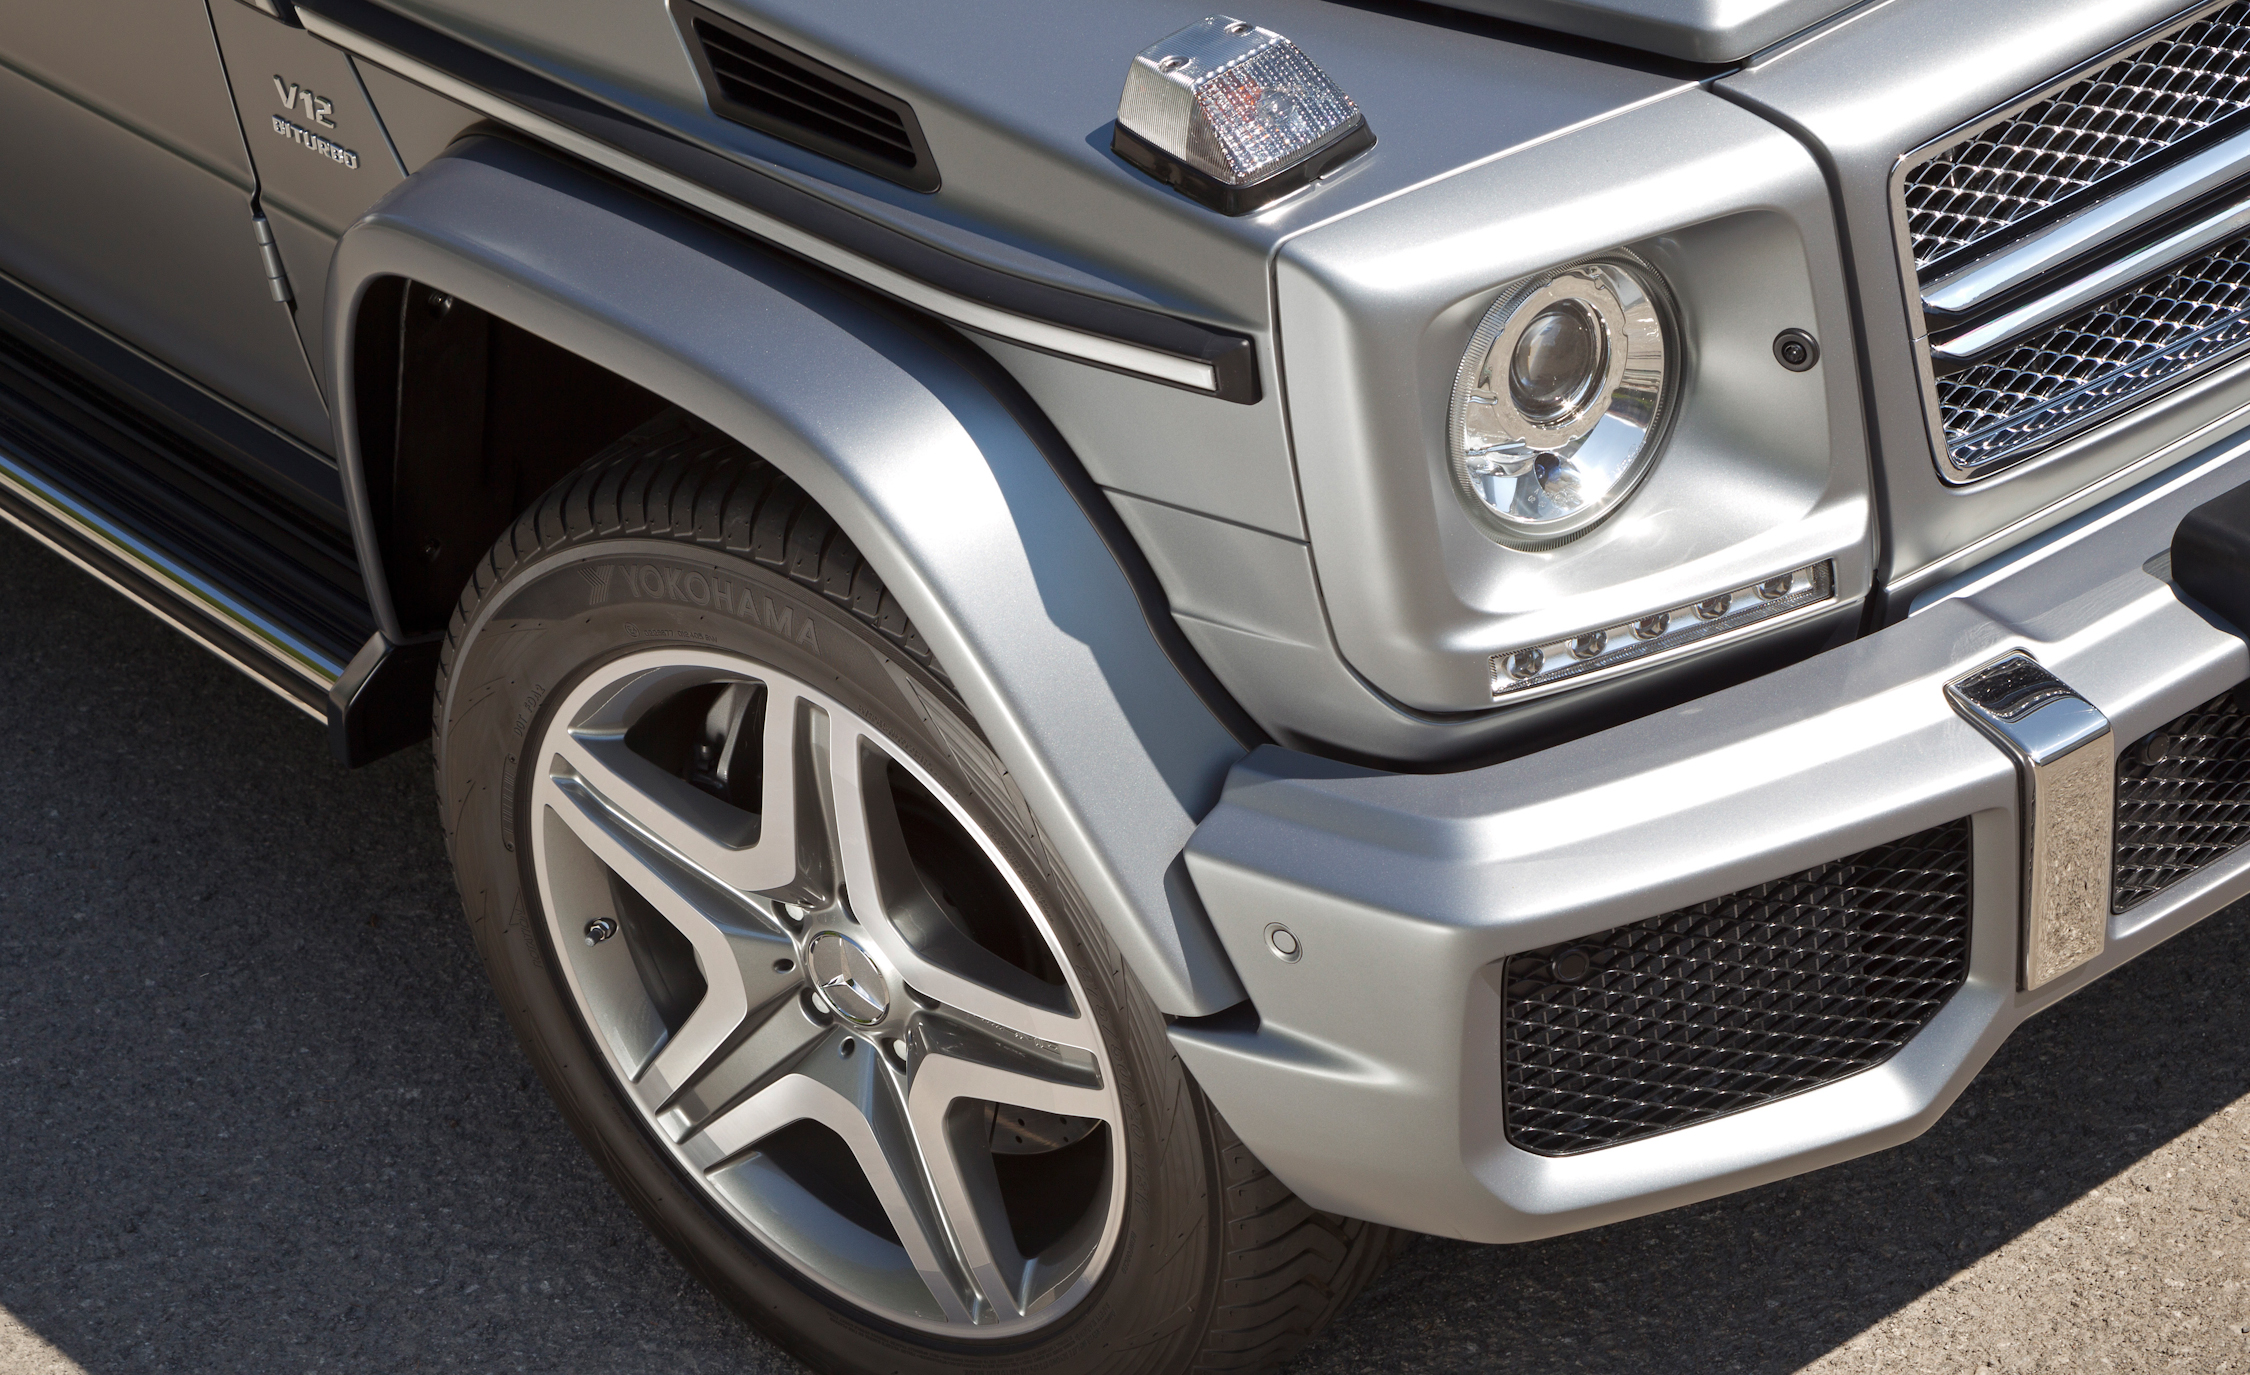 2016 Mercedes-Benz G65 AMG Exterior Wheel and Headlight